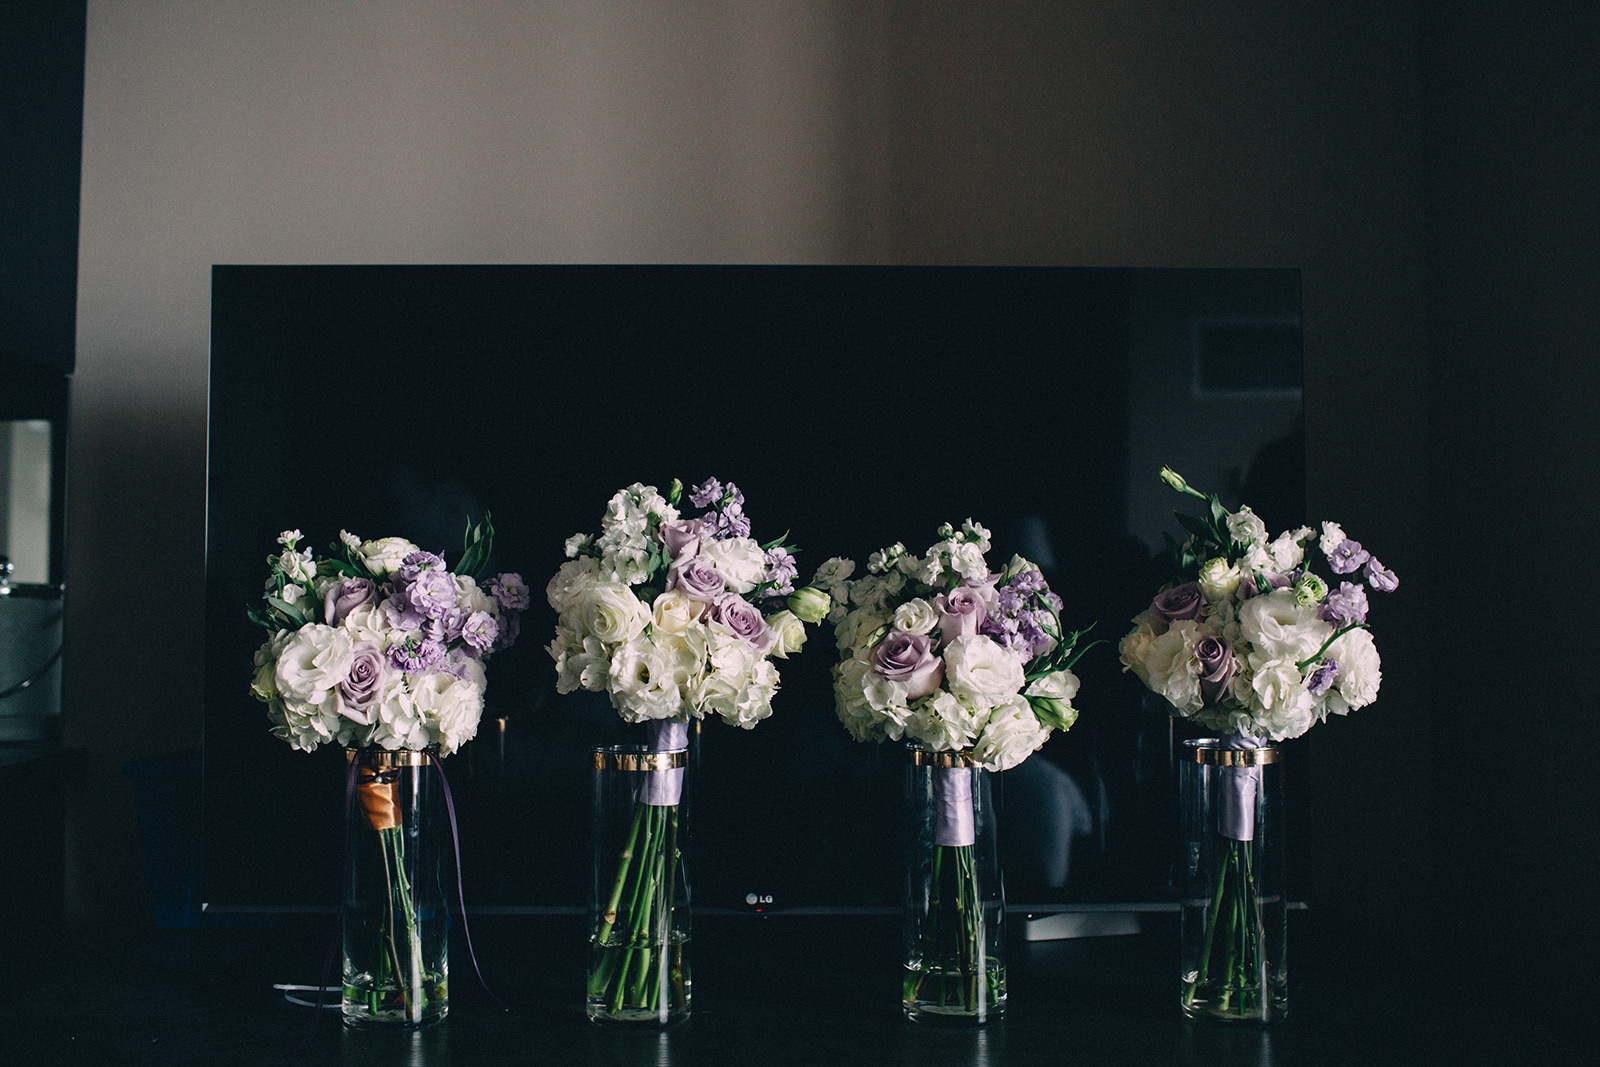 One-King-West-Toronto-wedding-photography_Sam-Wong-of-Visual-Cravings_KnR-05